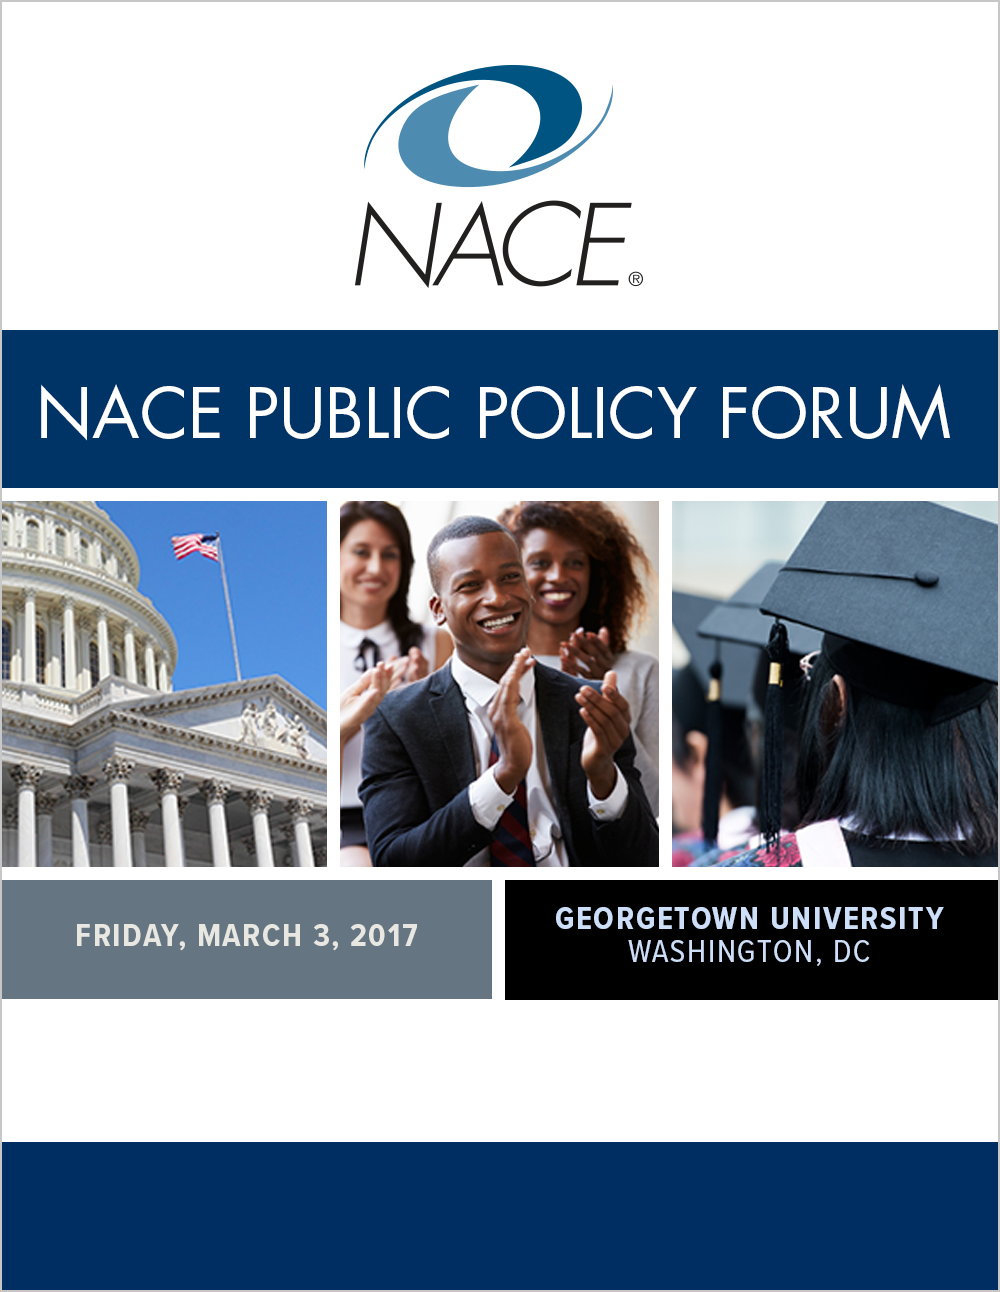 NACE Public Policy Forum